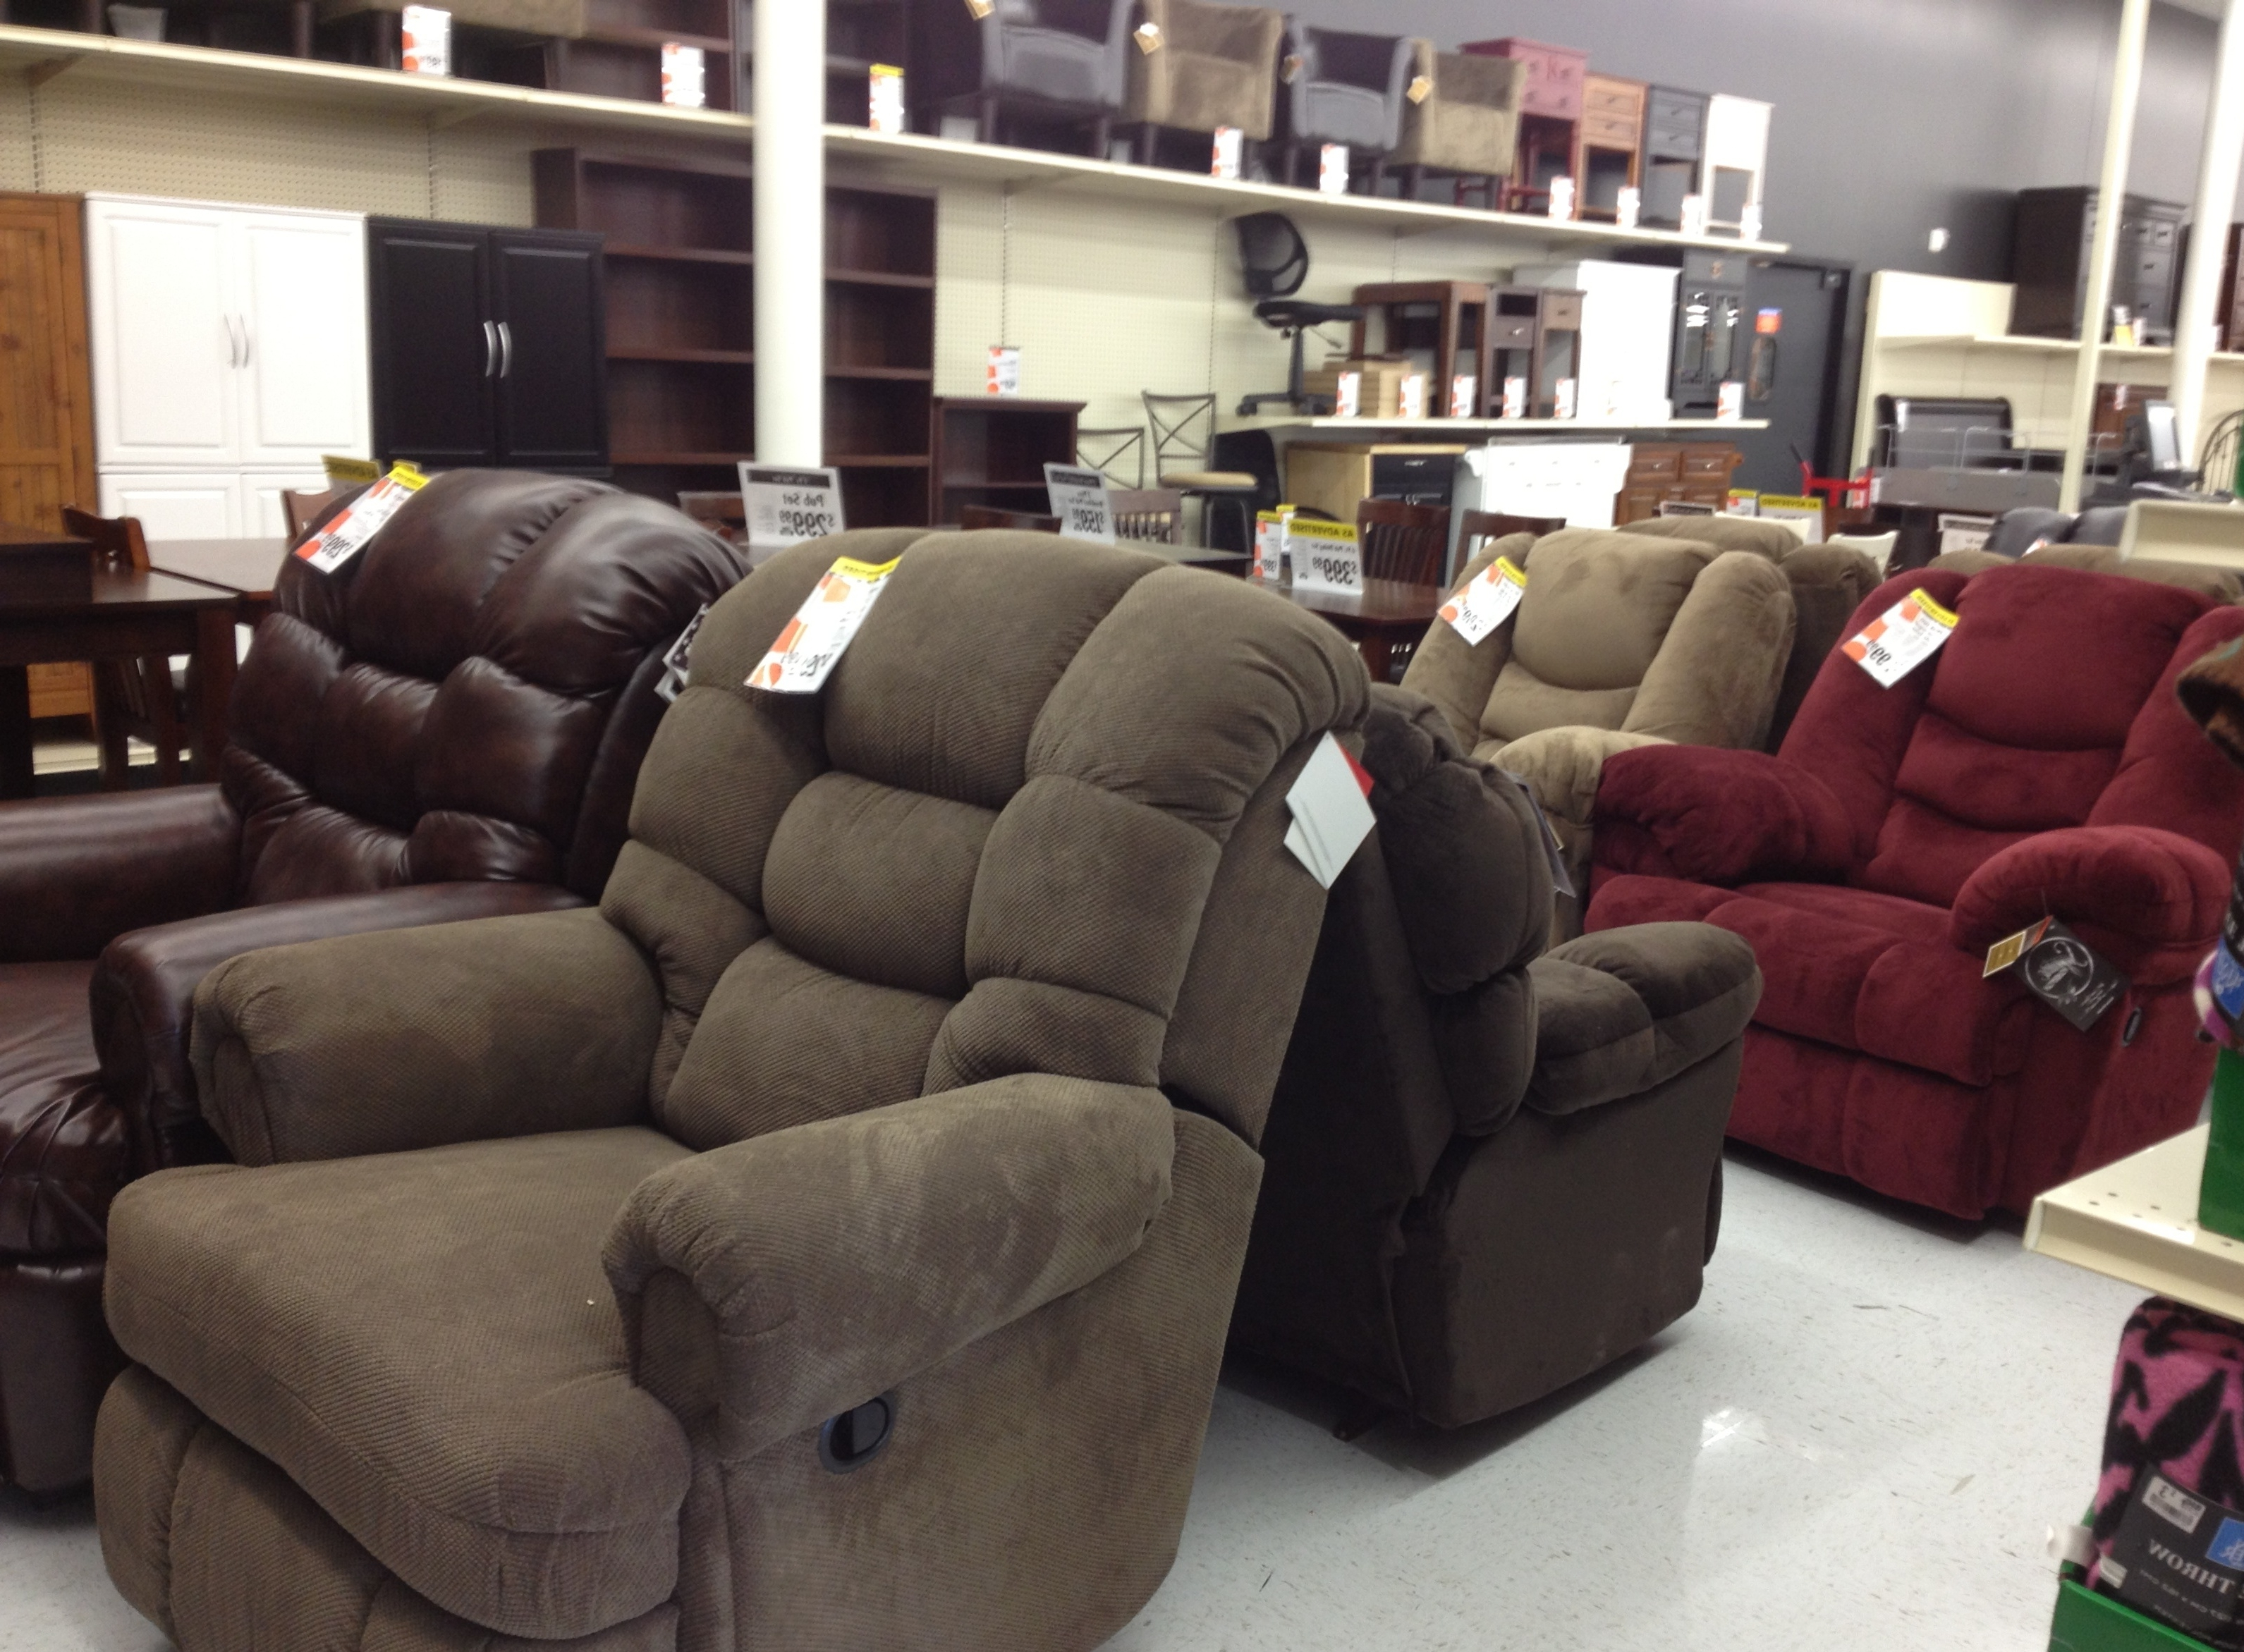 Newest Chaise Lounge Chairs At Big Lots Intended For Big Lots Living Room Furniture – Free Online Home Decor (View 12 of 15)